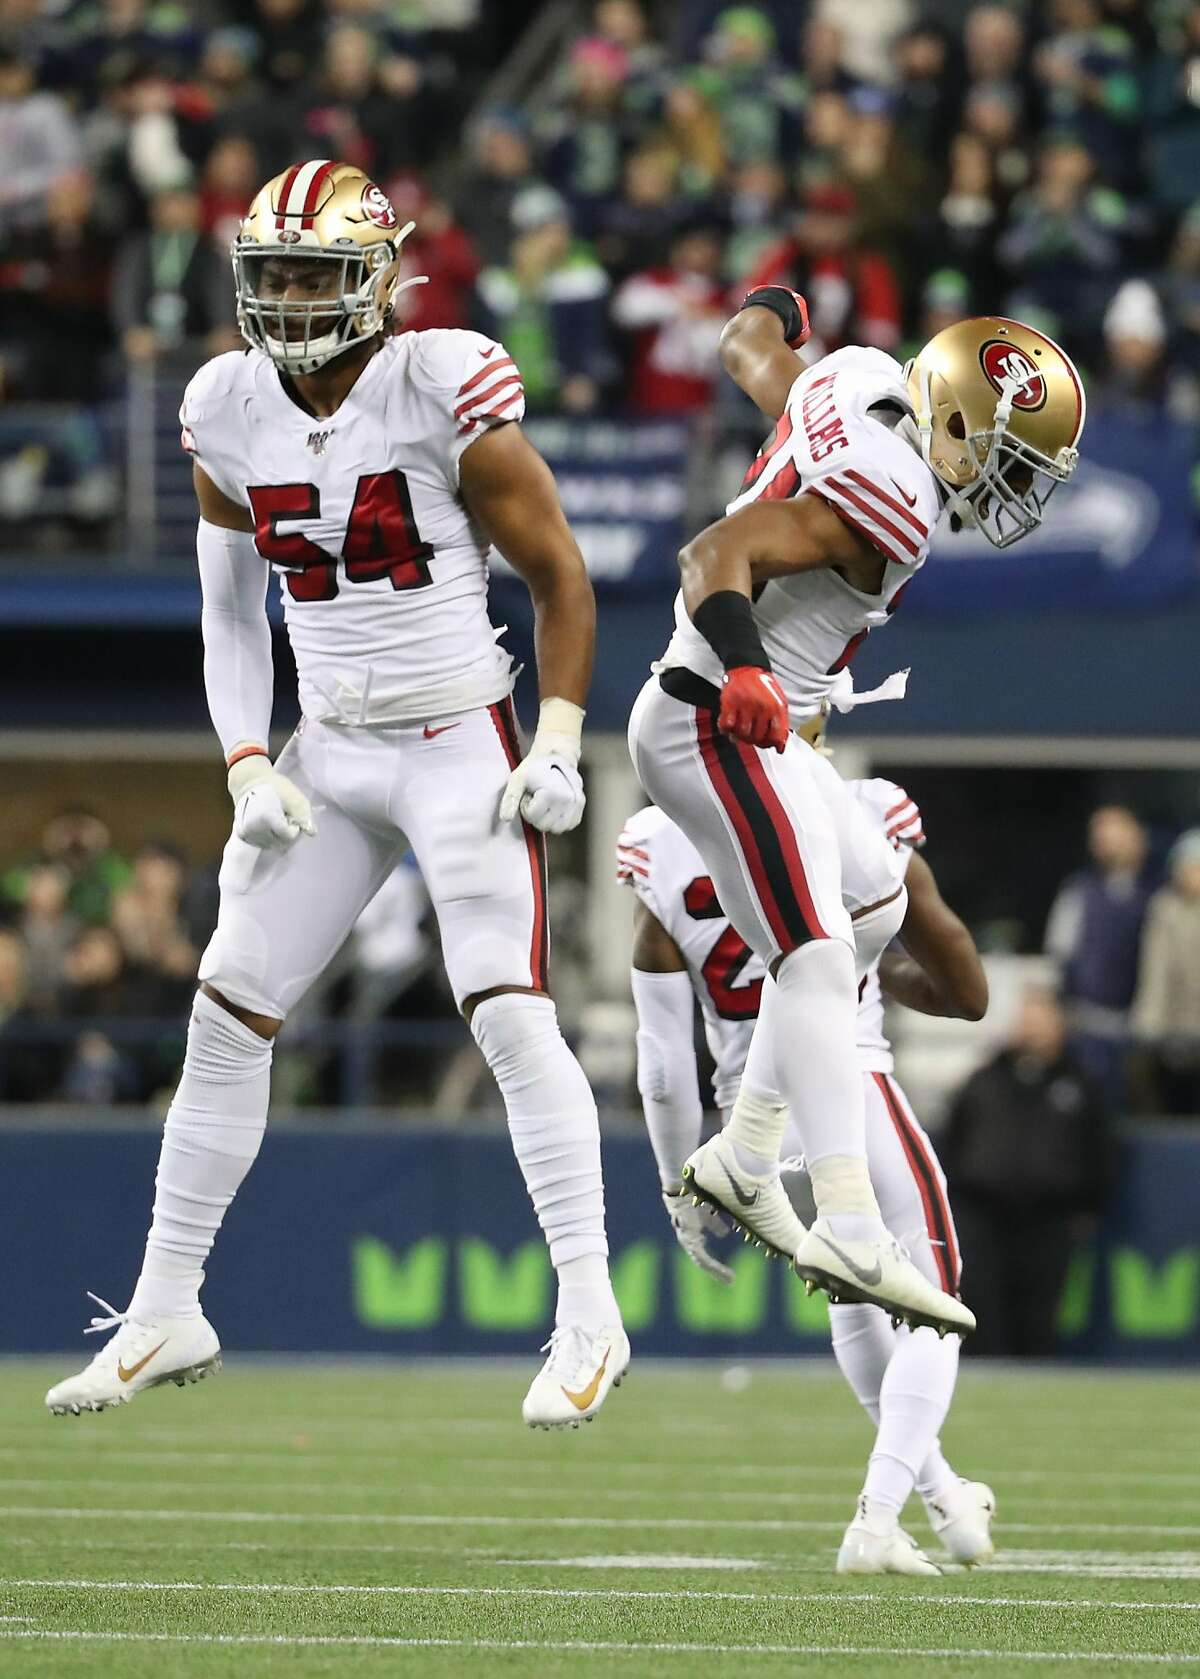 Middle linebacker Fred Warner #54 of the San Francisco 49ers and defensive back K'Waun Williams #24 celebrate a play against the Seattle Seahawks during the second quarter of the game at CenturyLink Field on December 29, 2019 in Seattle, Washington.